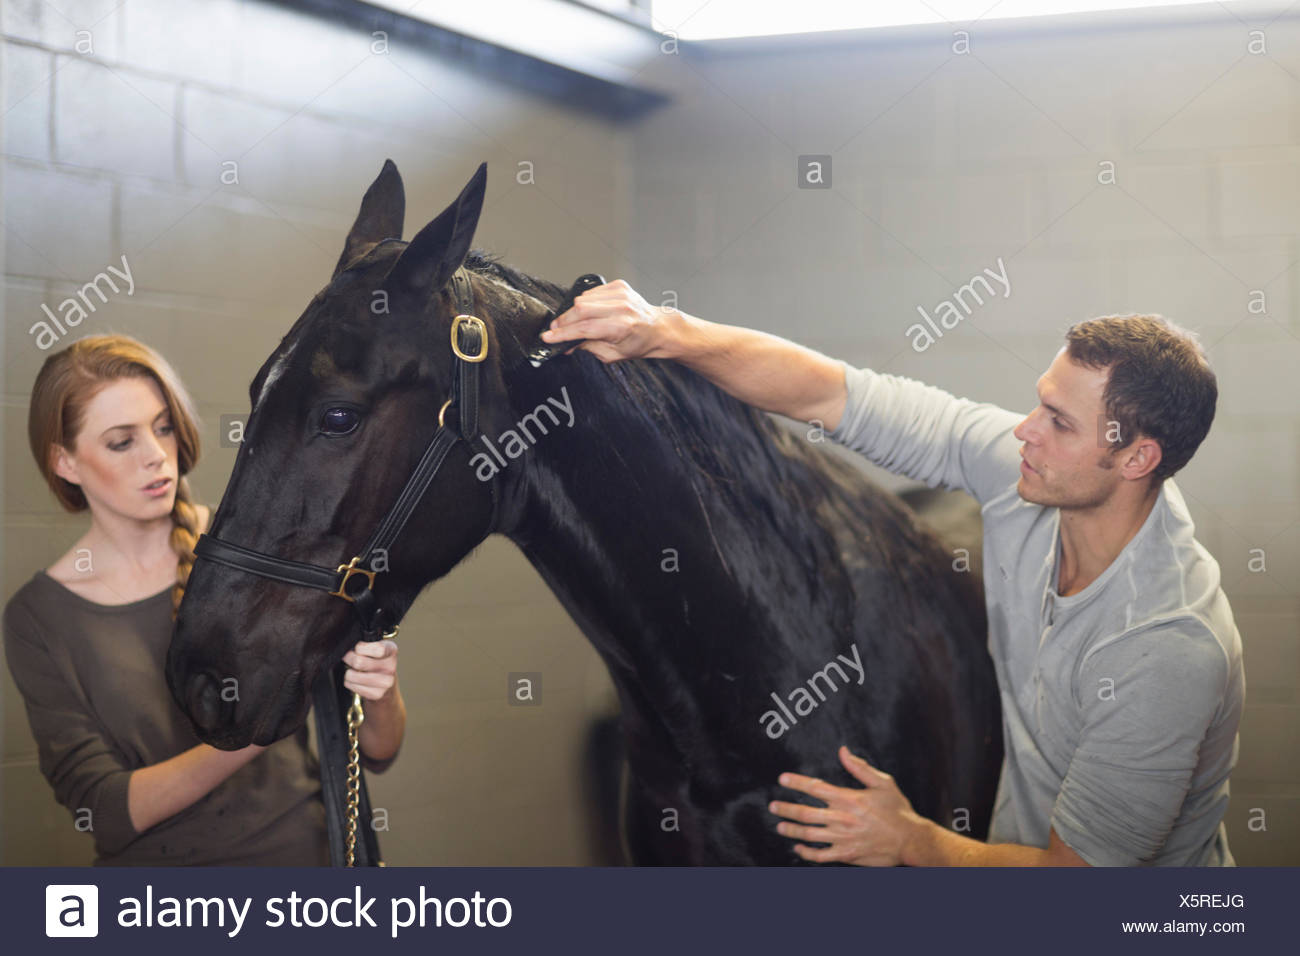 Stablehands grooming black horse in stables Stock Photo